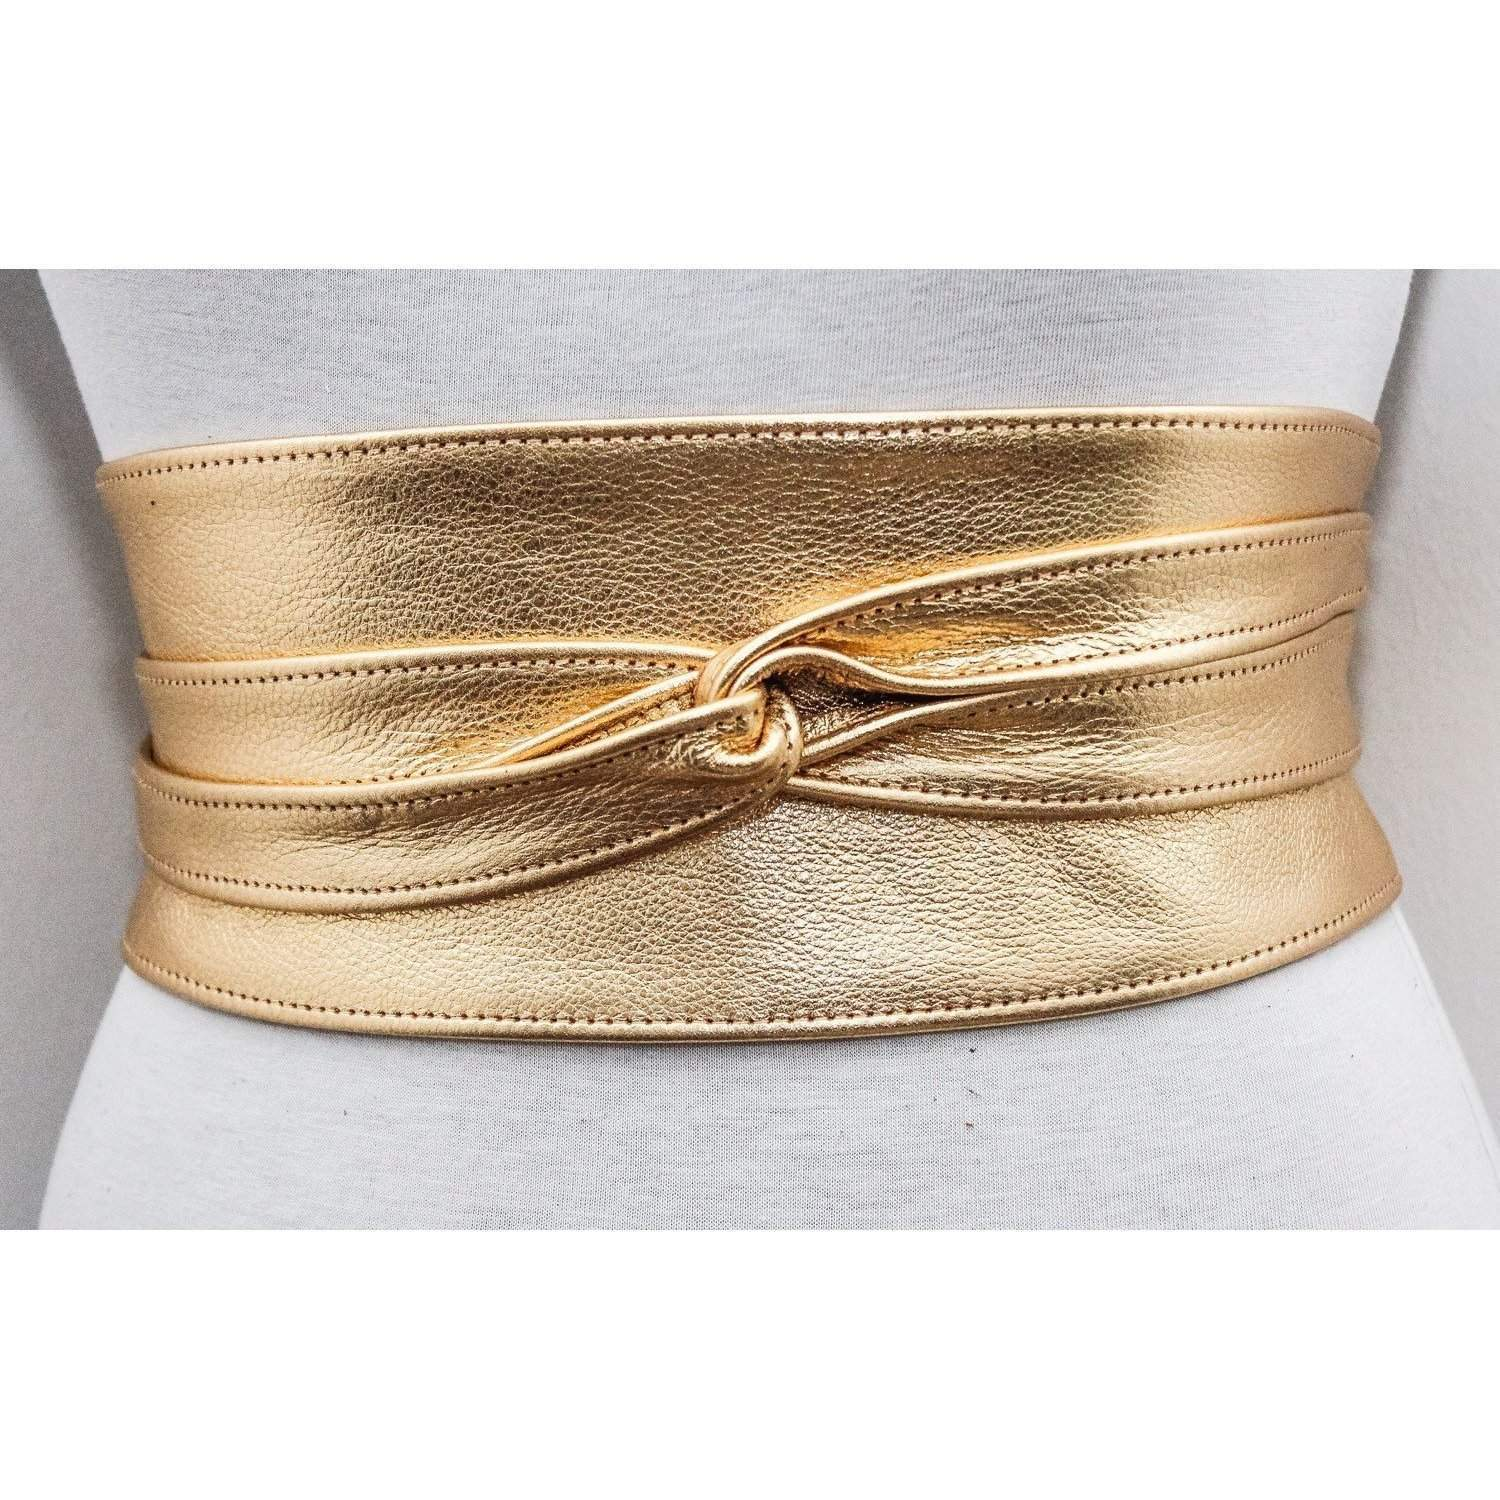 Gold Leather Obi Belt | Gold Bridal Belt | Gold Sash Belt - loveyaayaa